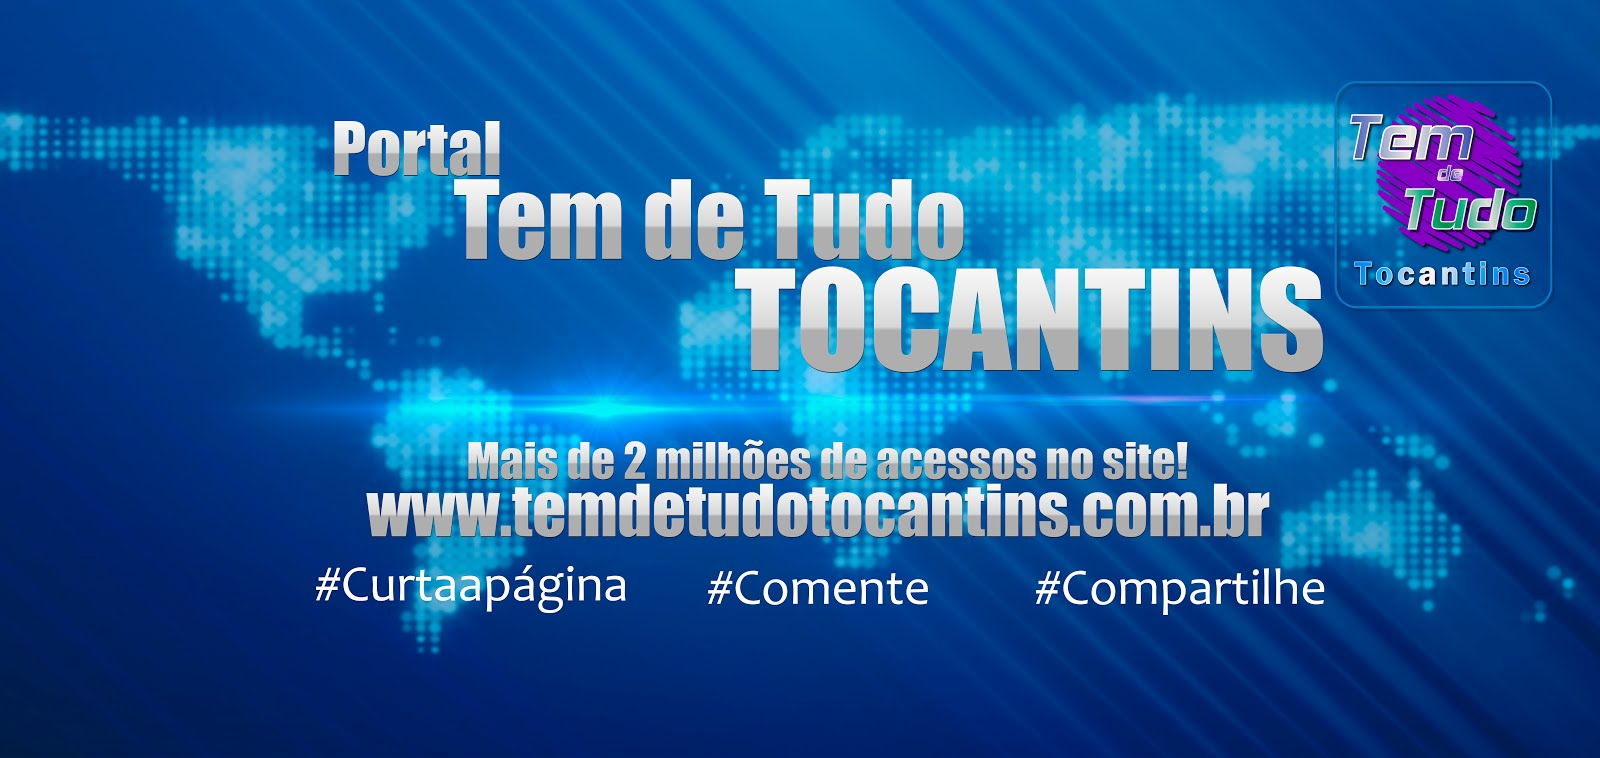 Portal Tem de Tudo Tocantins